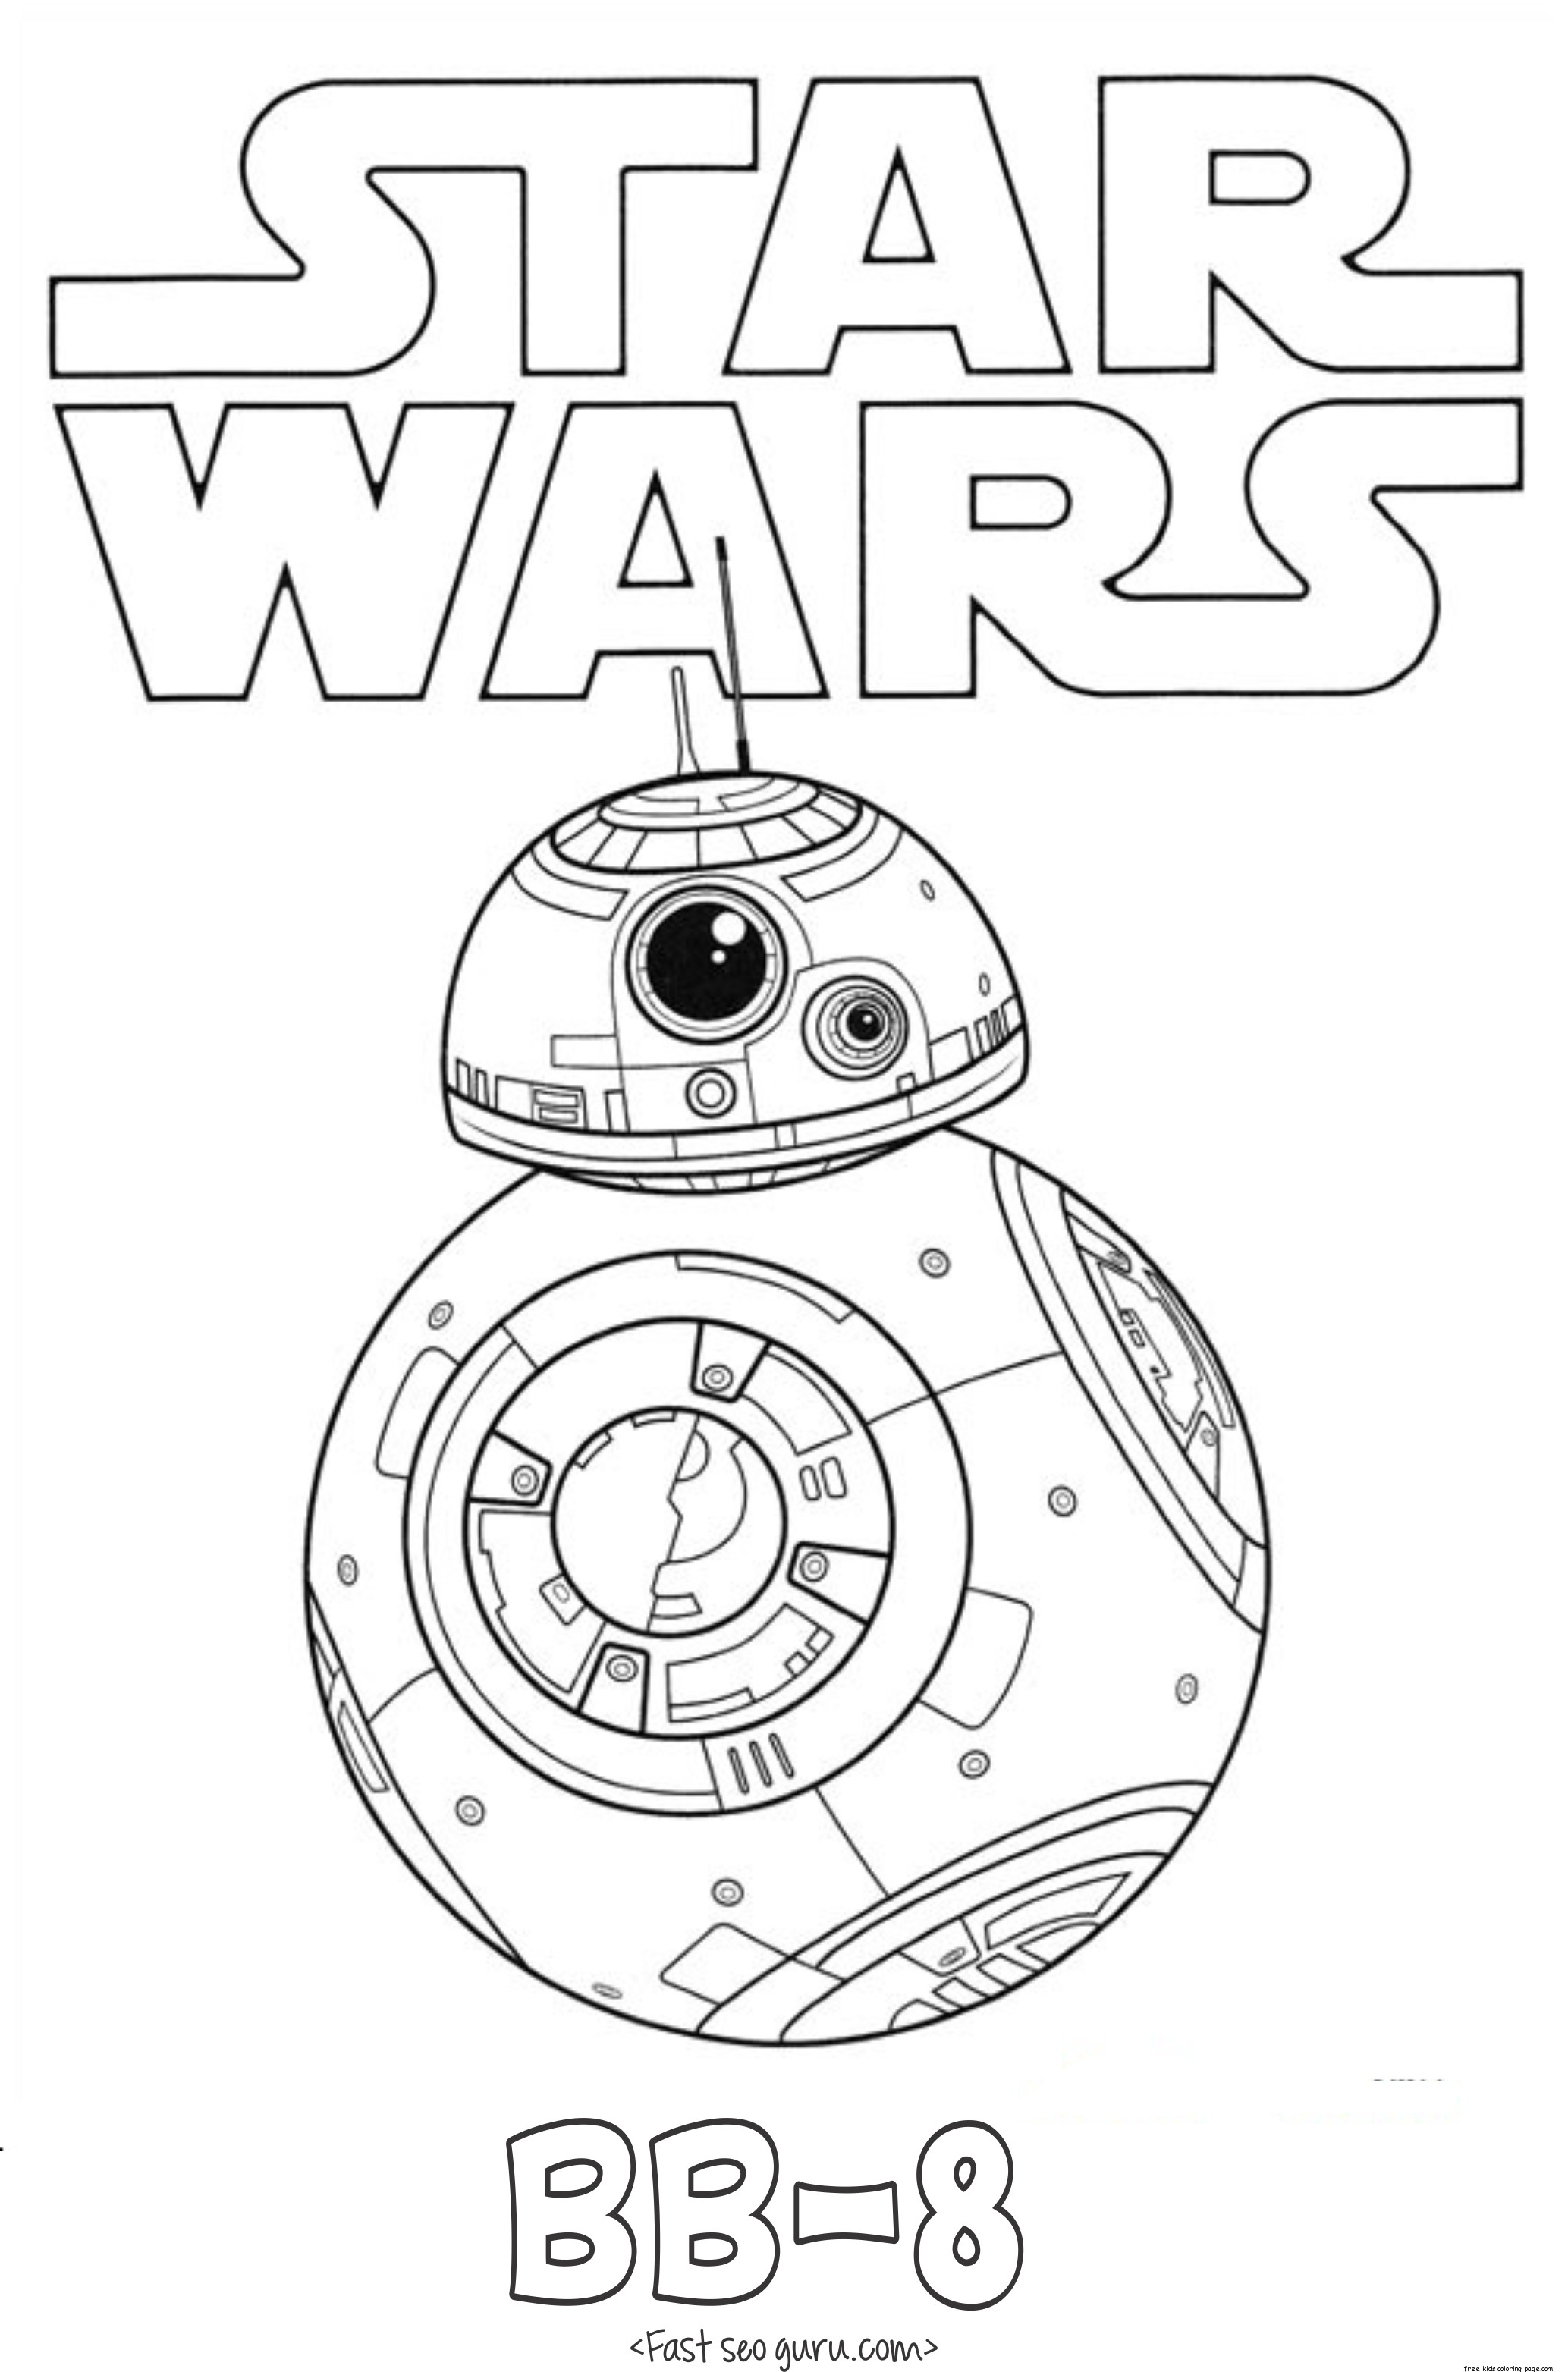 Star wars pictures to color